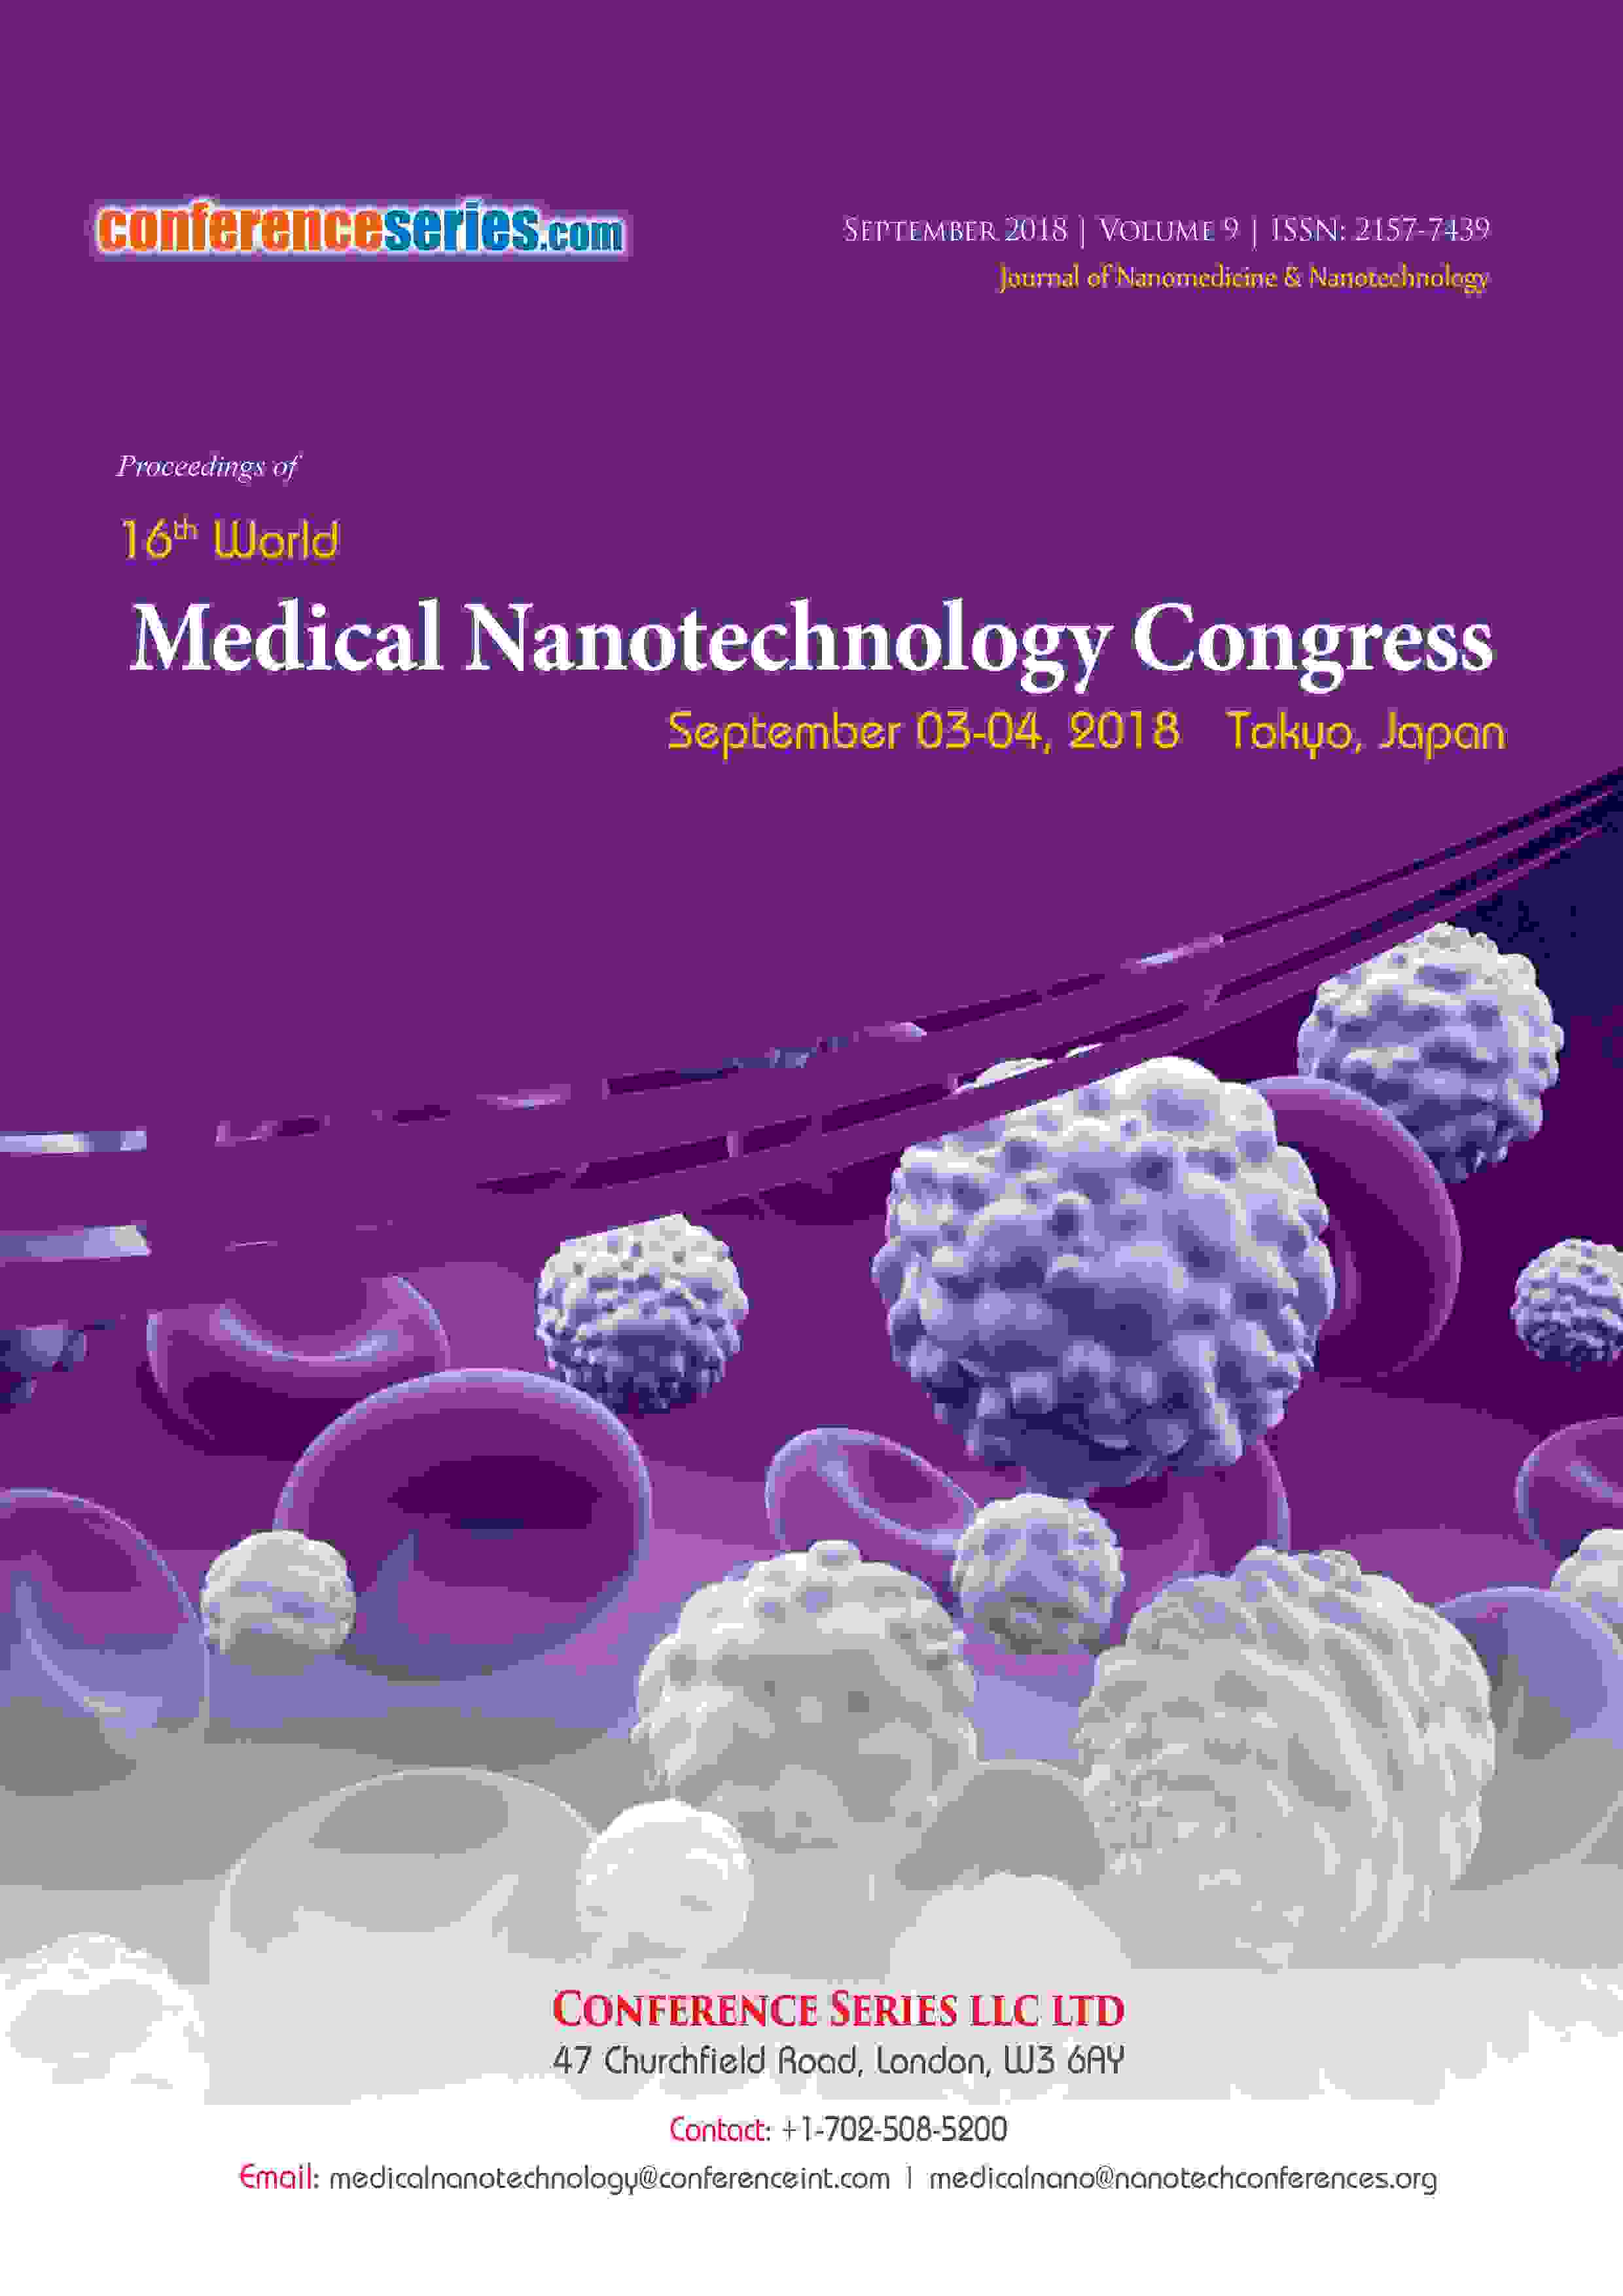 Medical Nanotechnology 2018 Proceedings